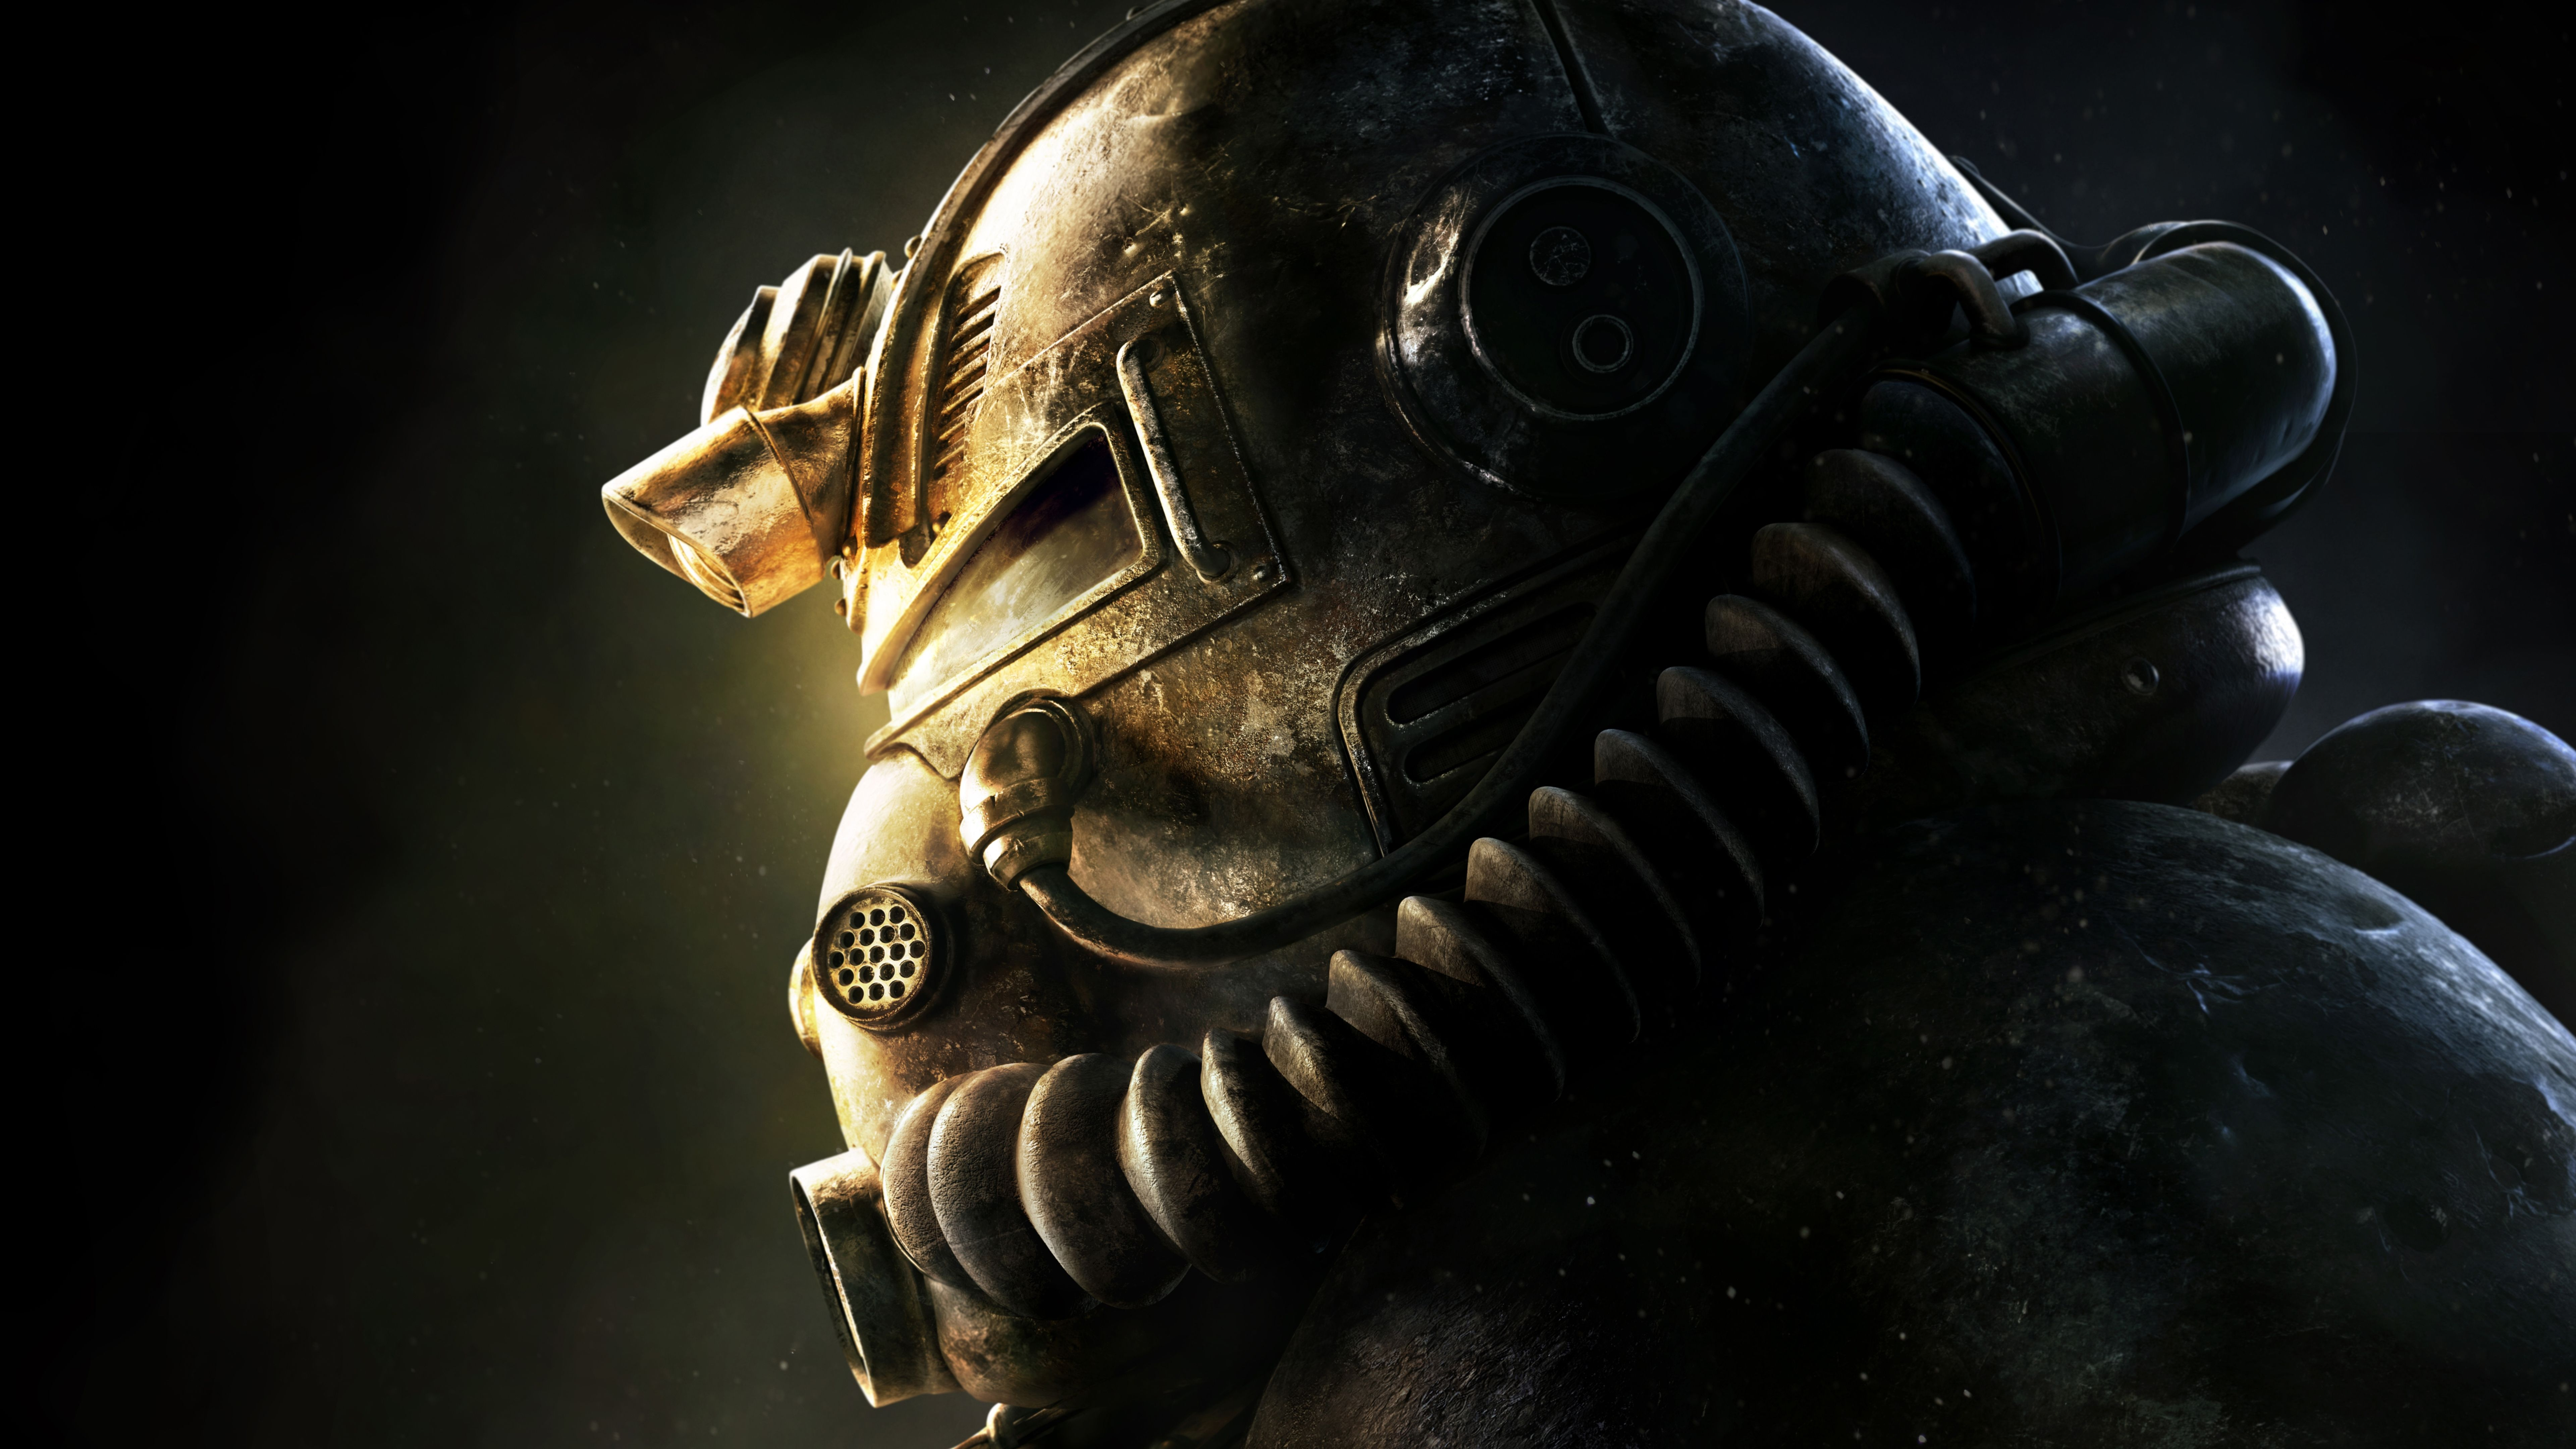 Fallout 76, Video Game, T51 Power Armor, 7680x4320